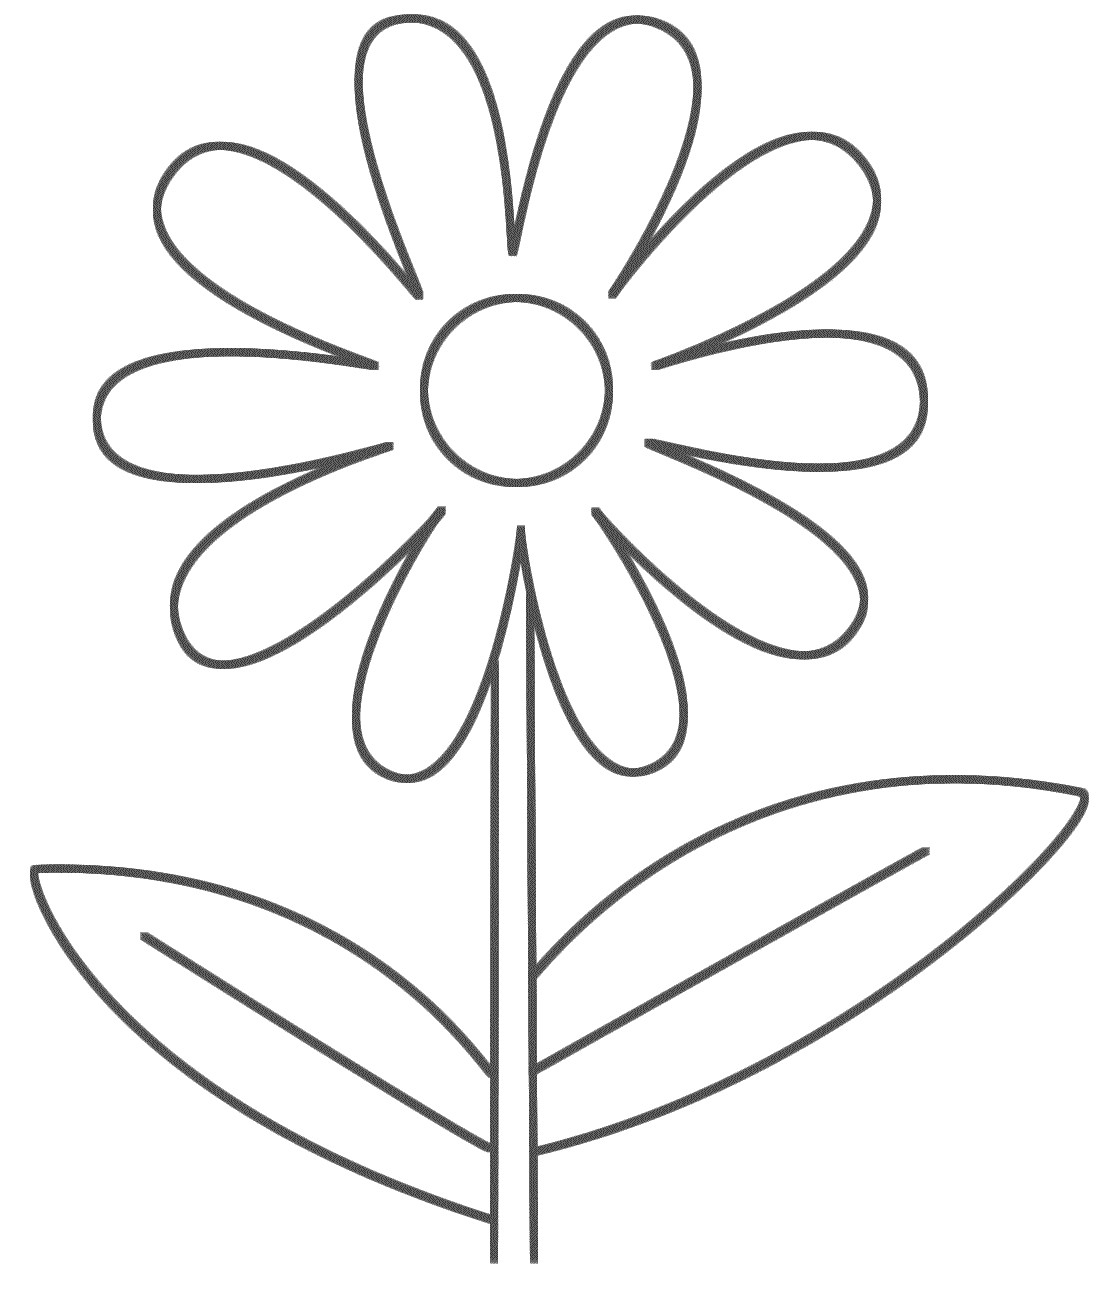 Flowers Coloring Pages Free Printable Printable Flower Coloring Pages For Kids Coloring Pages For Children